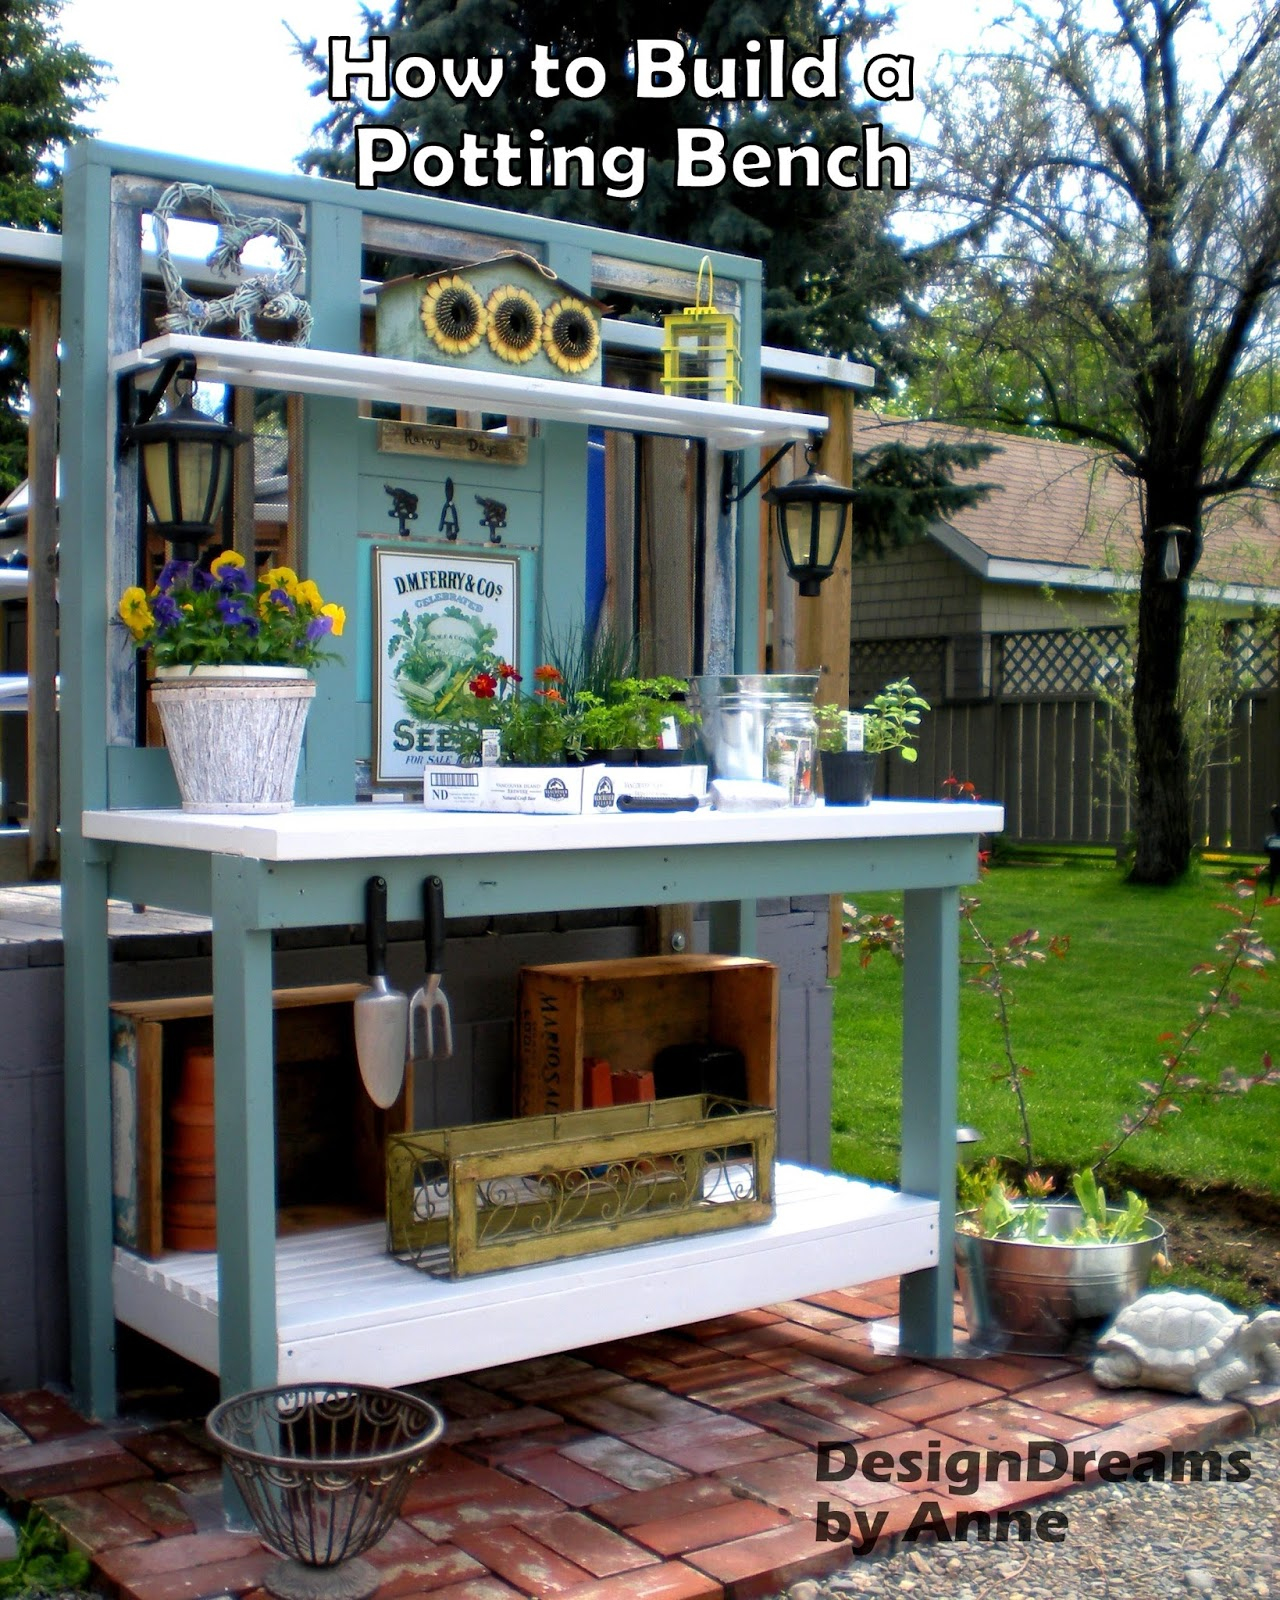 Woodwork Diy Potting Bench Plans Pdf Plans